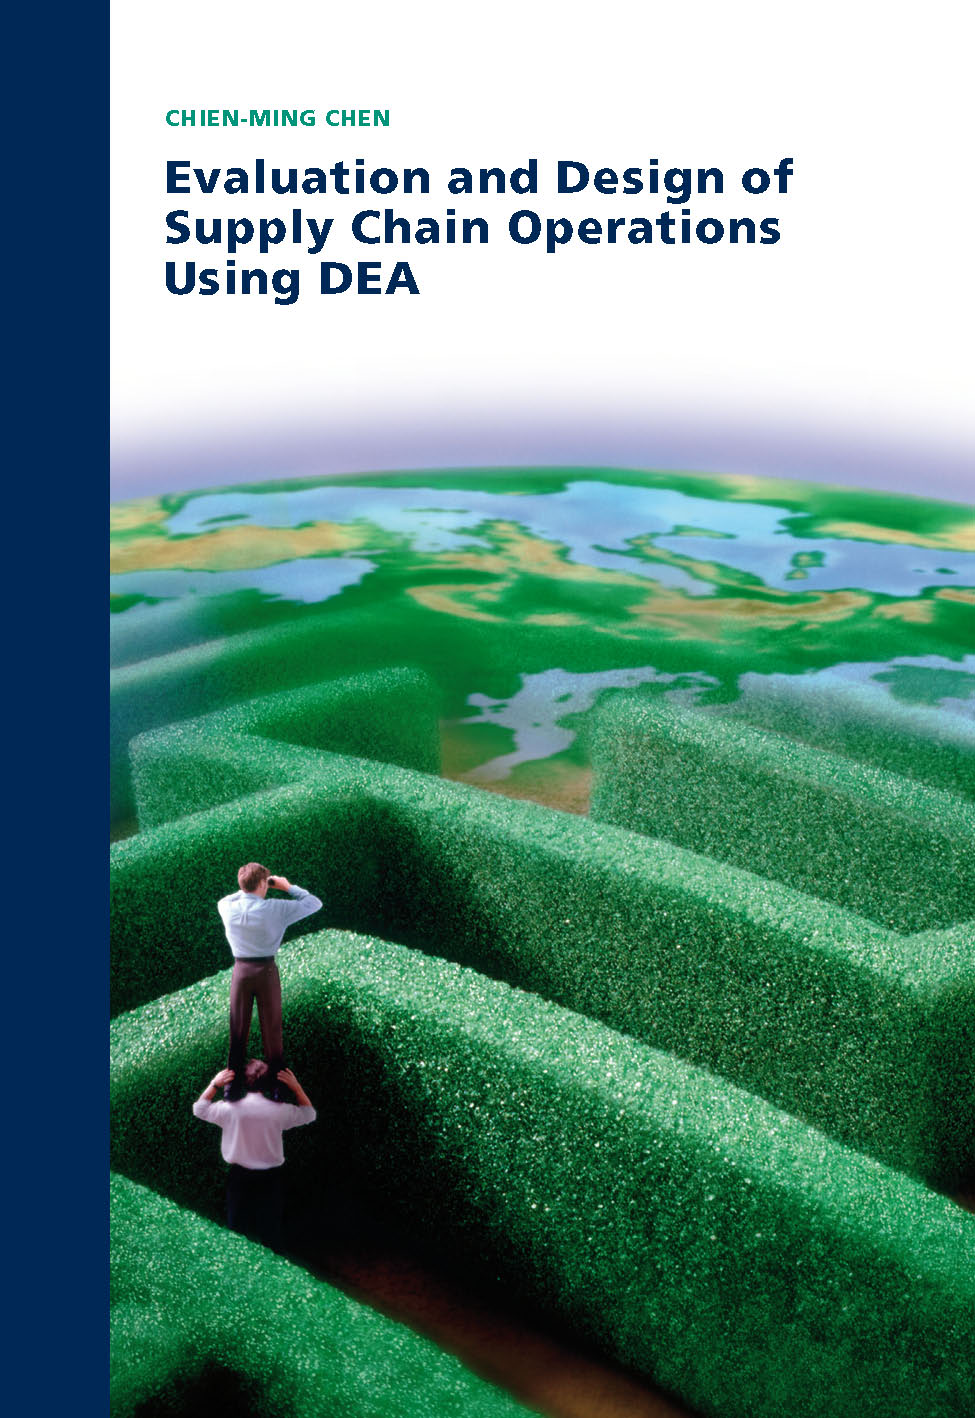 Evaluation and Design of Supply Chain Operations using DEA